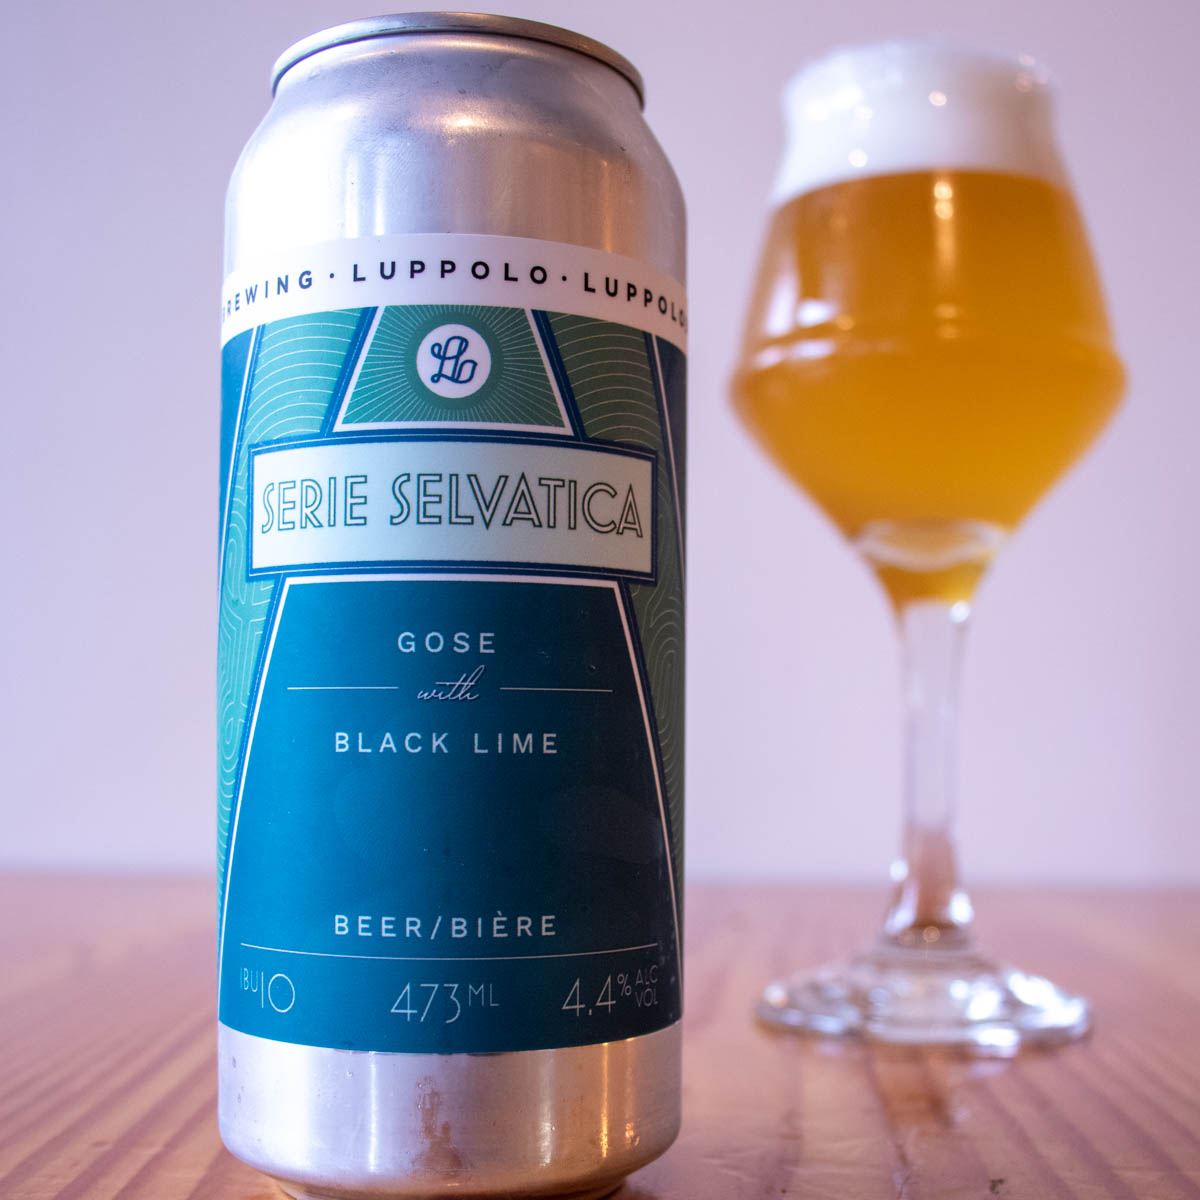 Gose with Black Lime